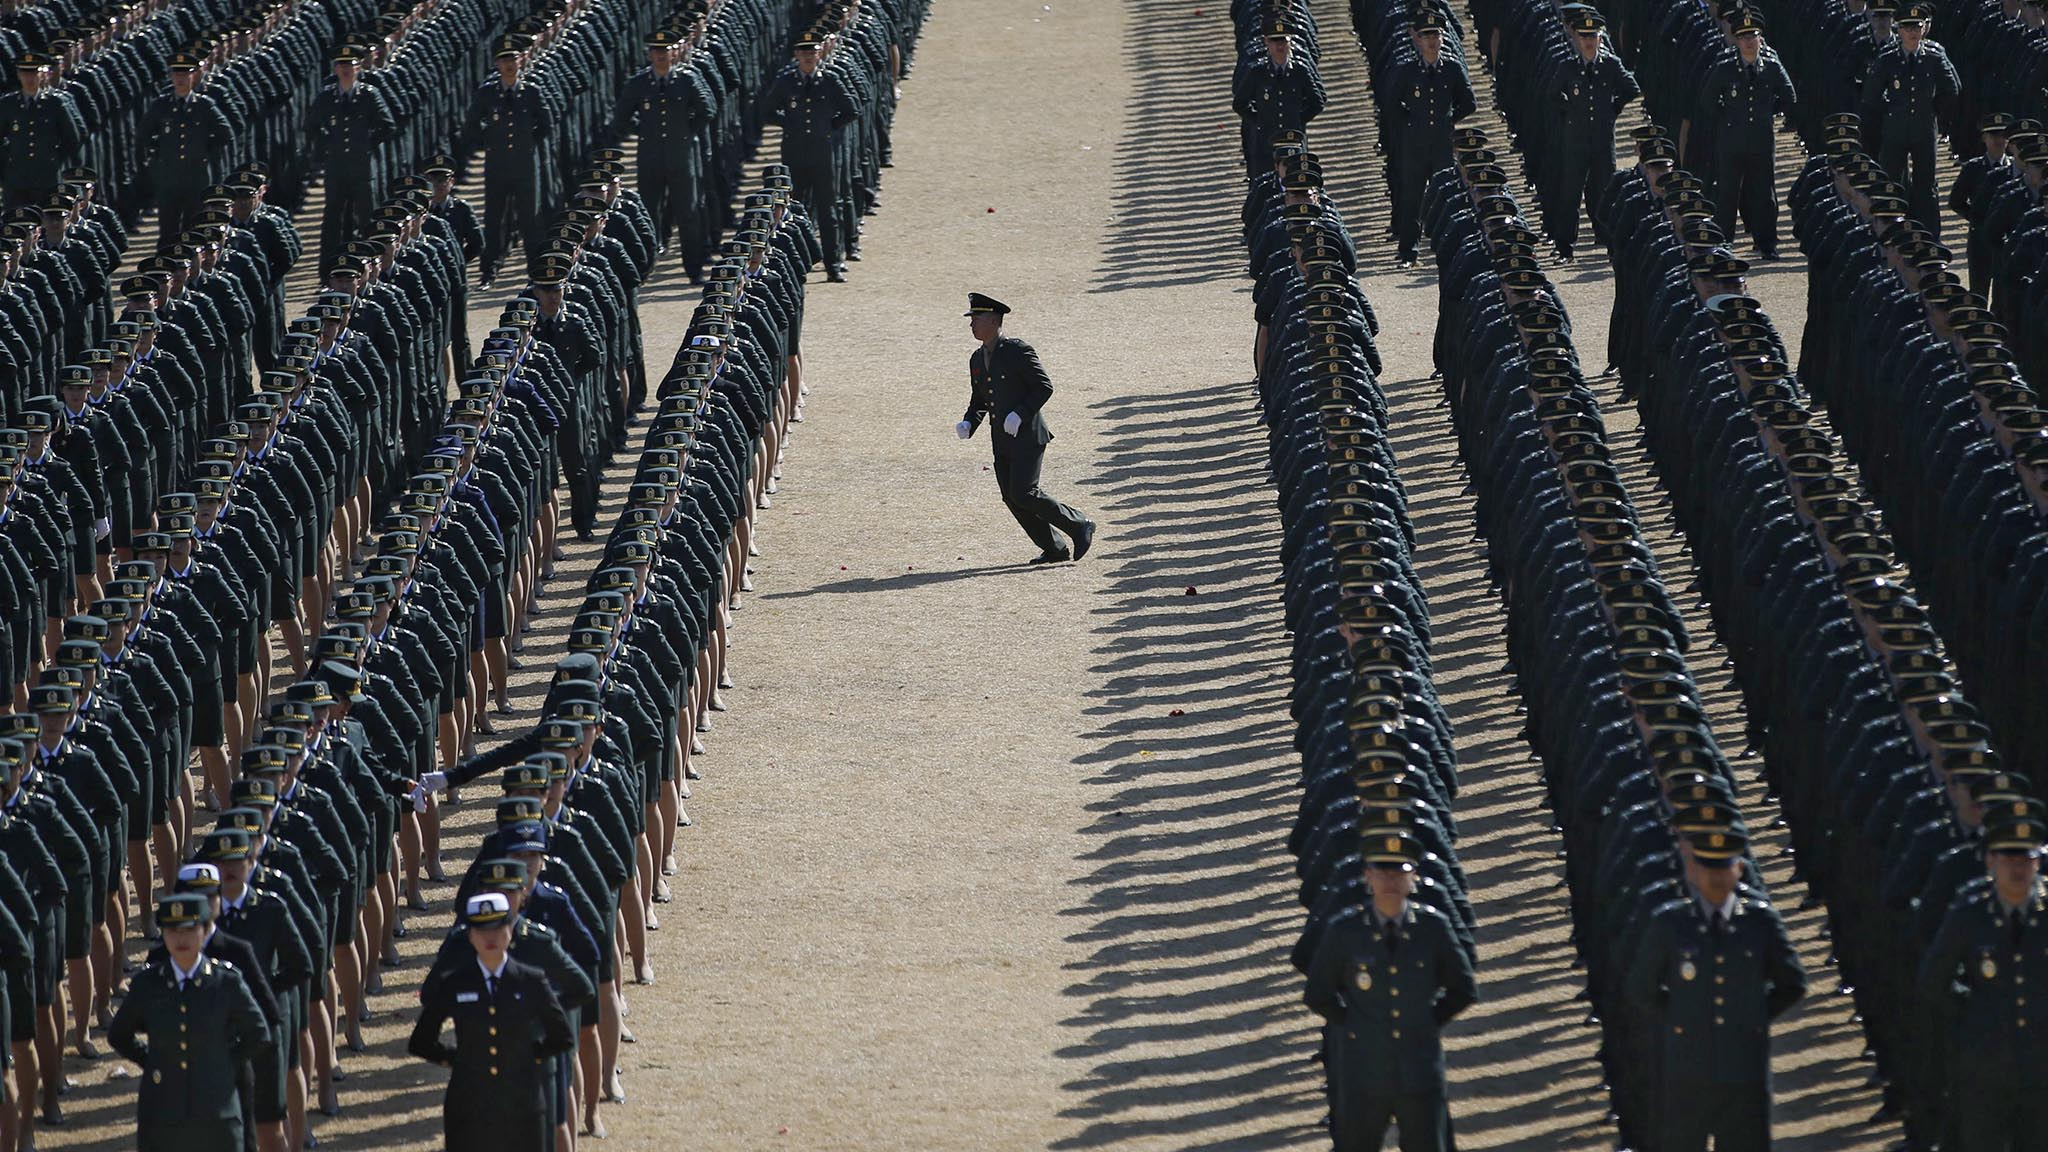 A new South Korean military officer runs into an echelon as they attend a joint commissioning ceremony for 6,478 new officers from the Army, Navy, Air Force and Marines at the military headquarters in Gyeryong